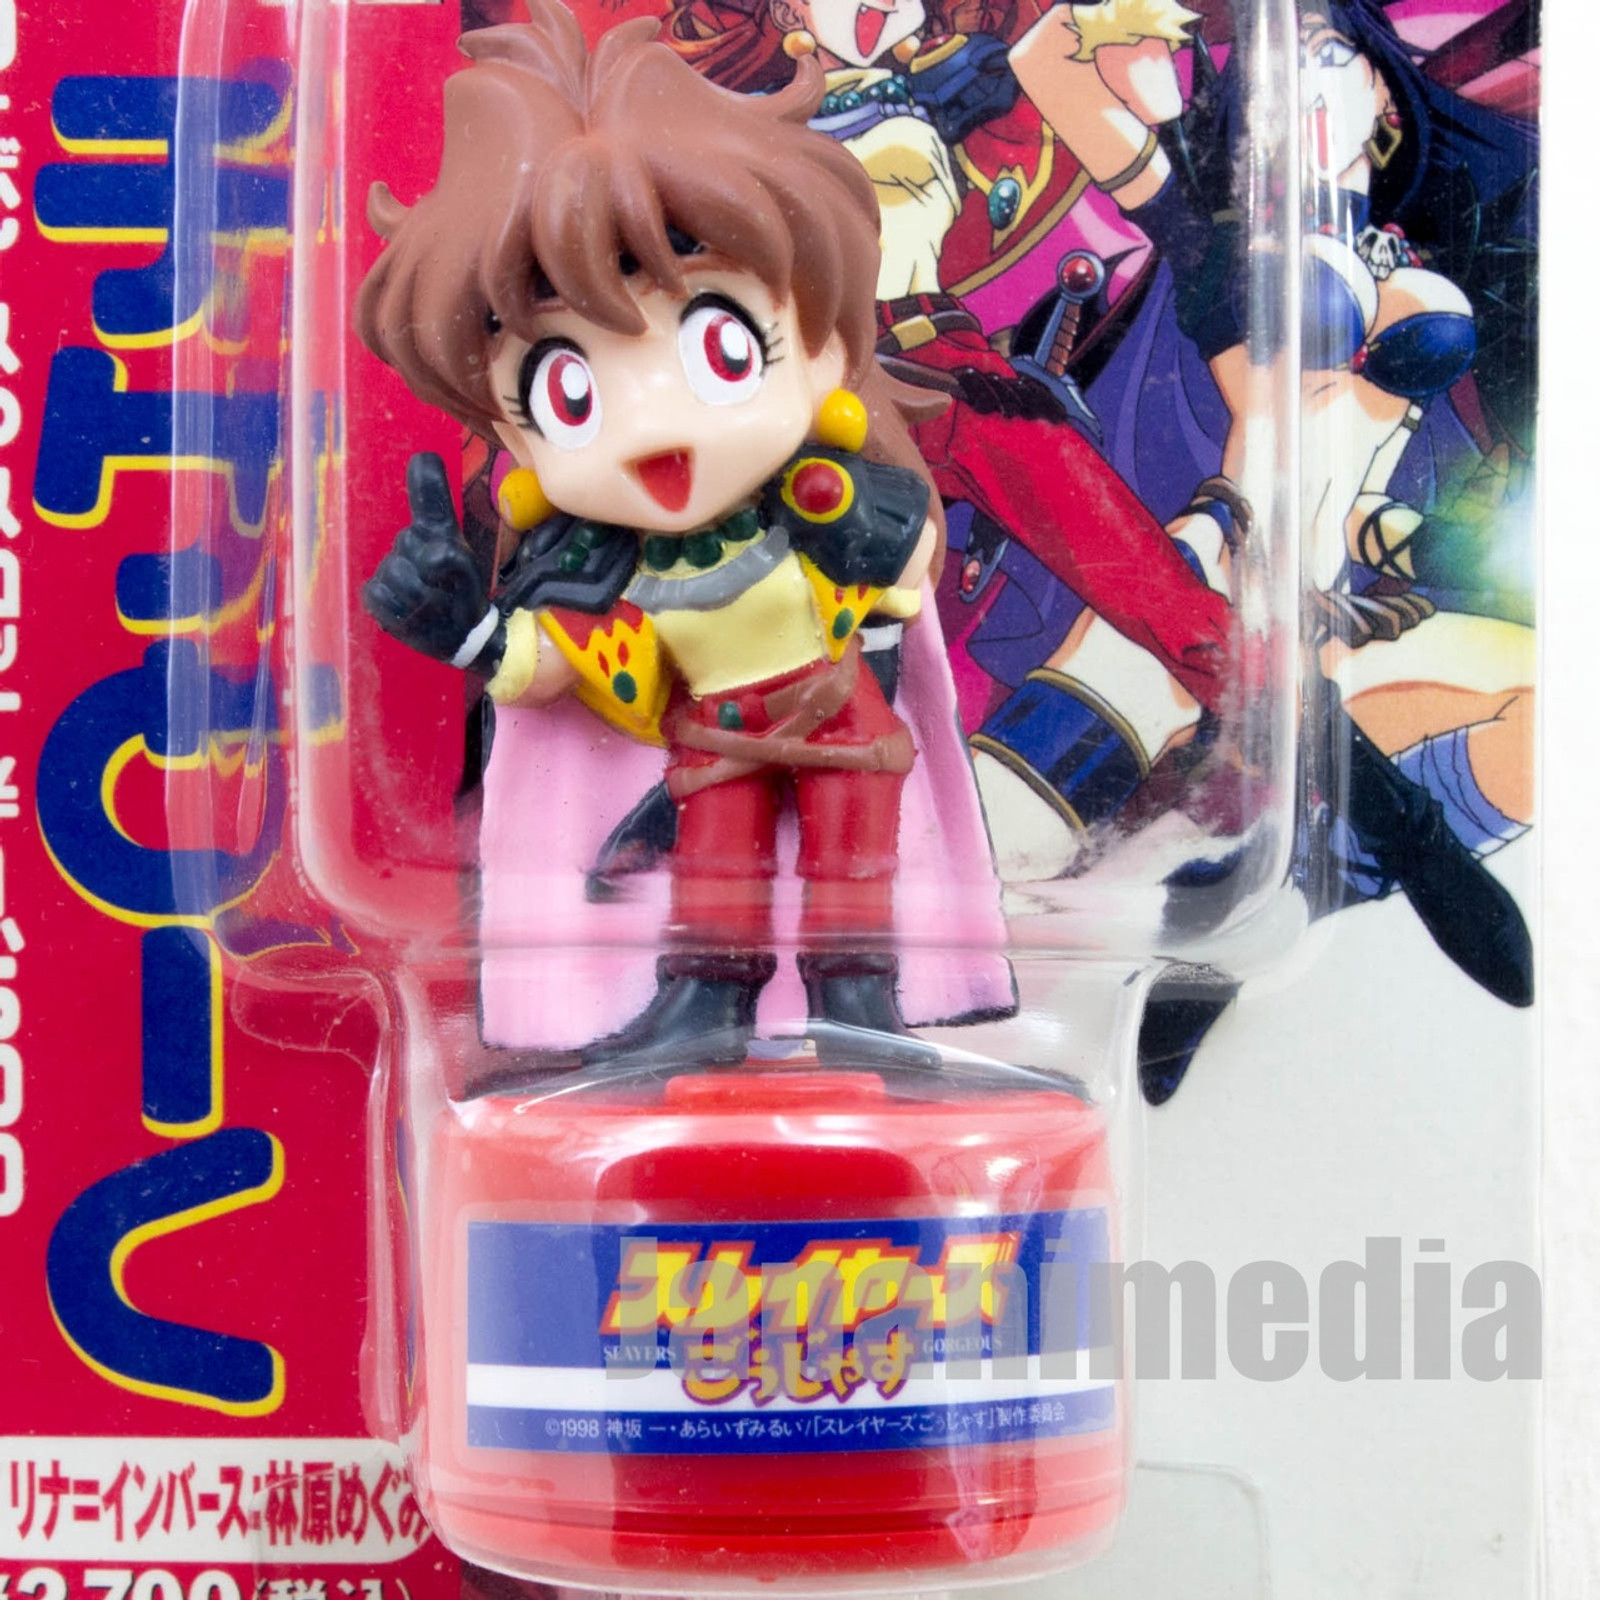 RARE Slayers Gorgeous Movie Lina Inverse Limited Voice Mascot Figure JAPAN ANIME #2